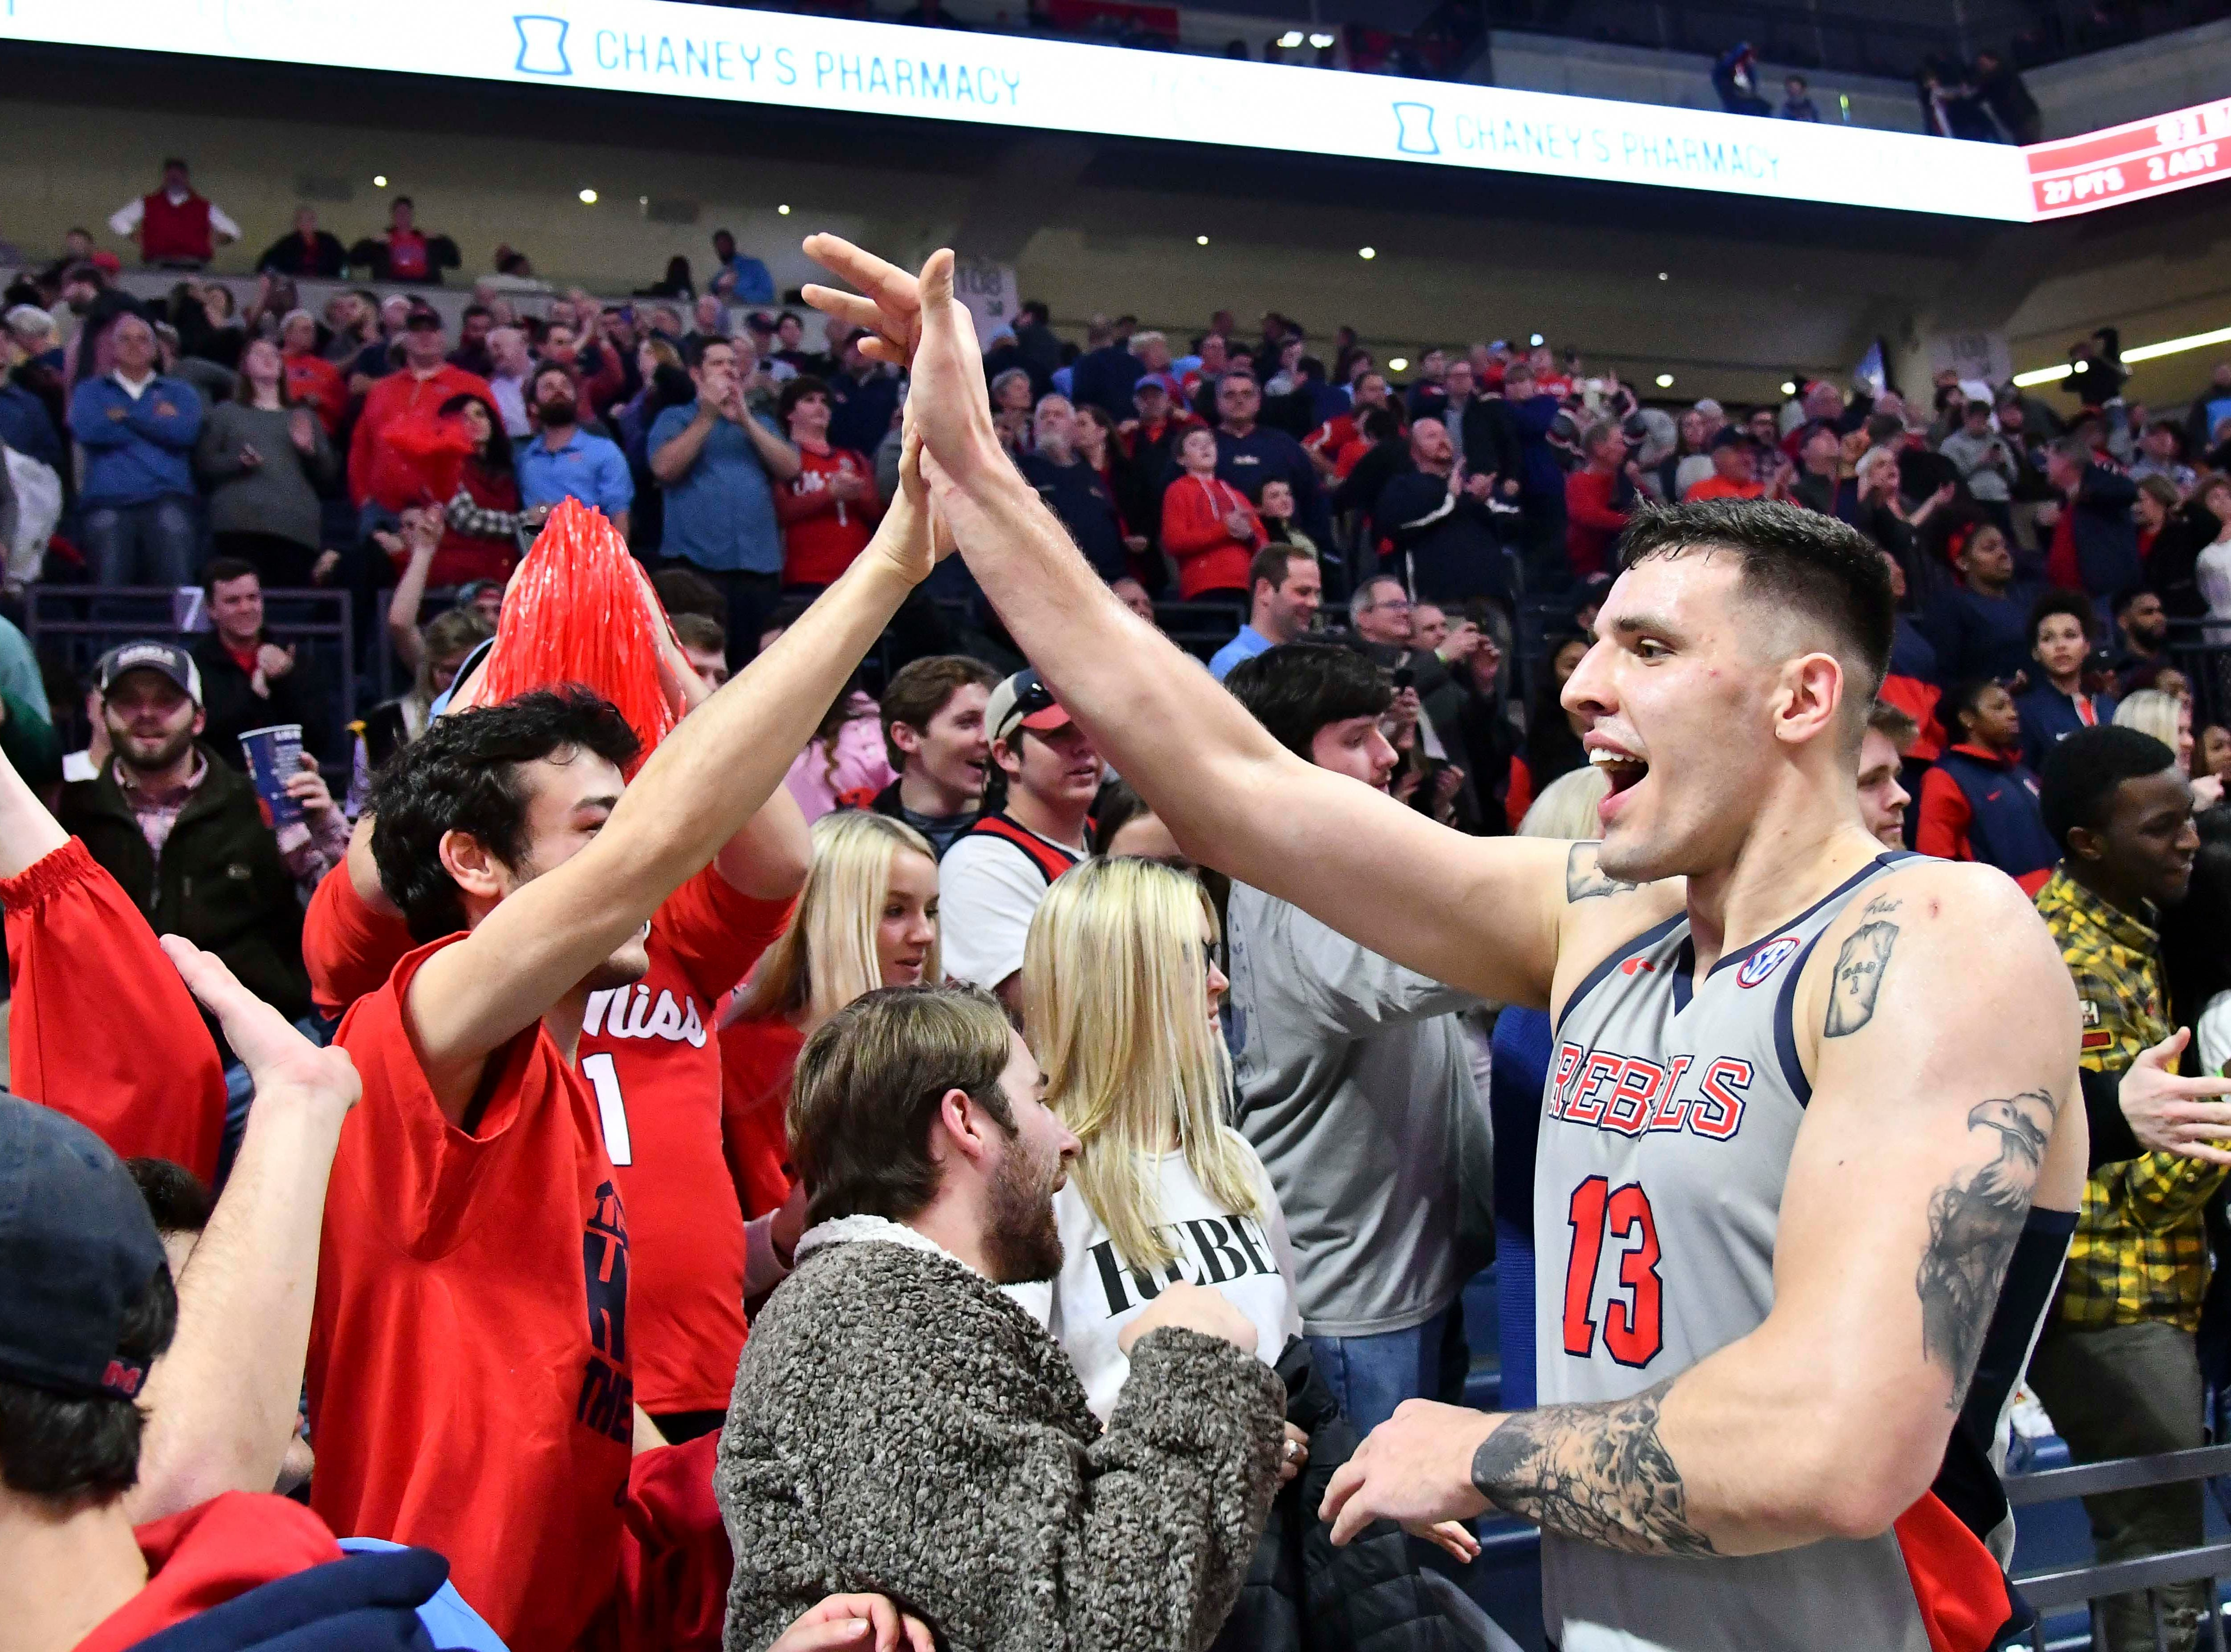 Jan 9, 2019; Oxford, MS, USA; Mississippi Rebels center Dominik Olejniczak (13) reacts with fans after the game against the Auburn Tigers at The Pavilion at Ole Miss. Mandatory Credit: Matt Bush-USA TODAY Sports